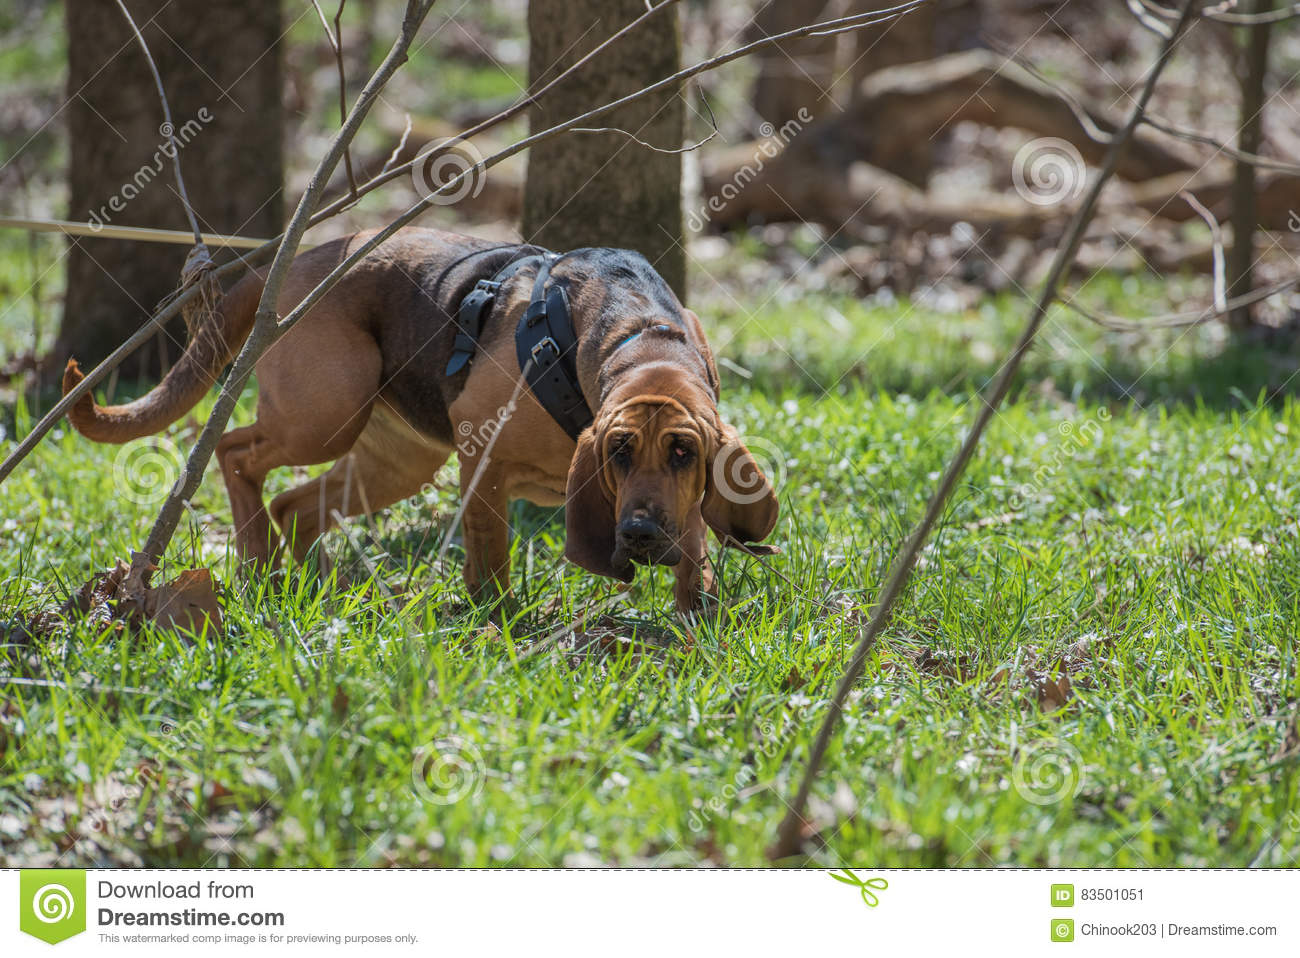 Bloodhound ing A Harness And Tracking Stock Image - Image of ...